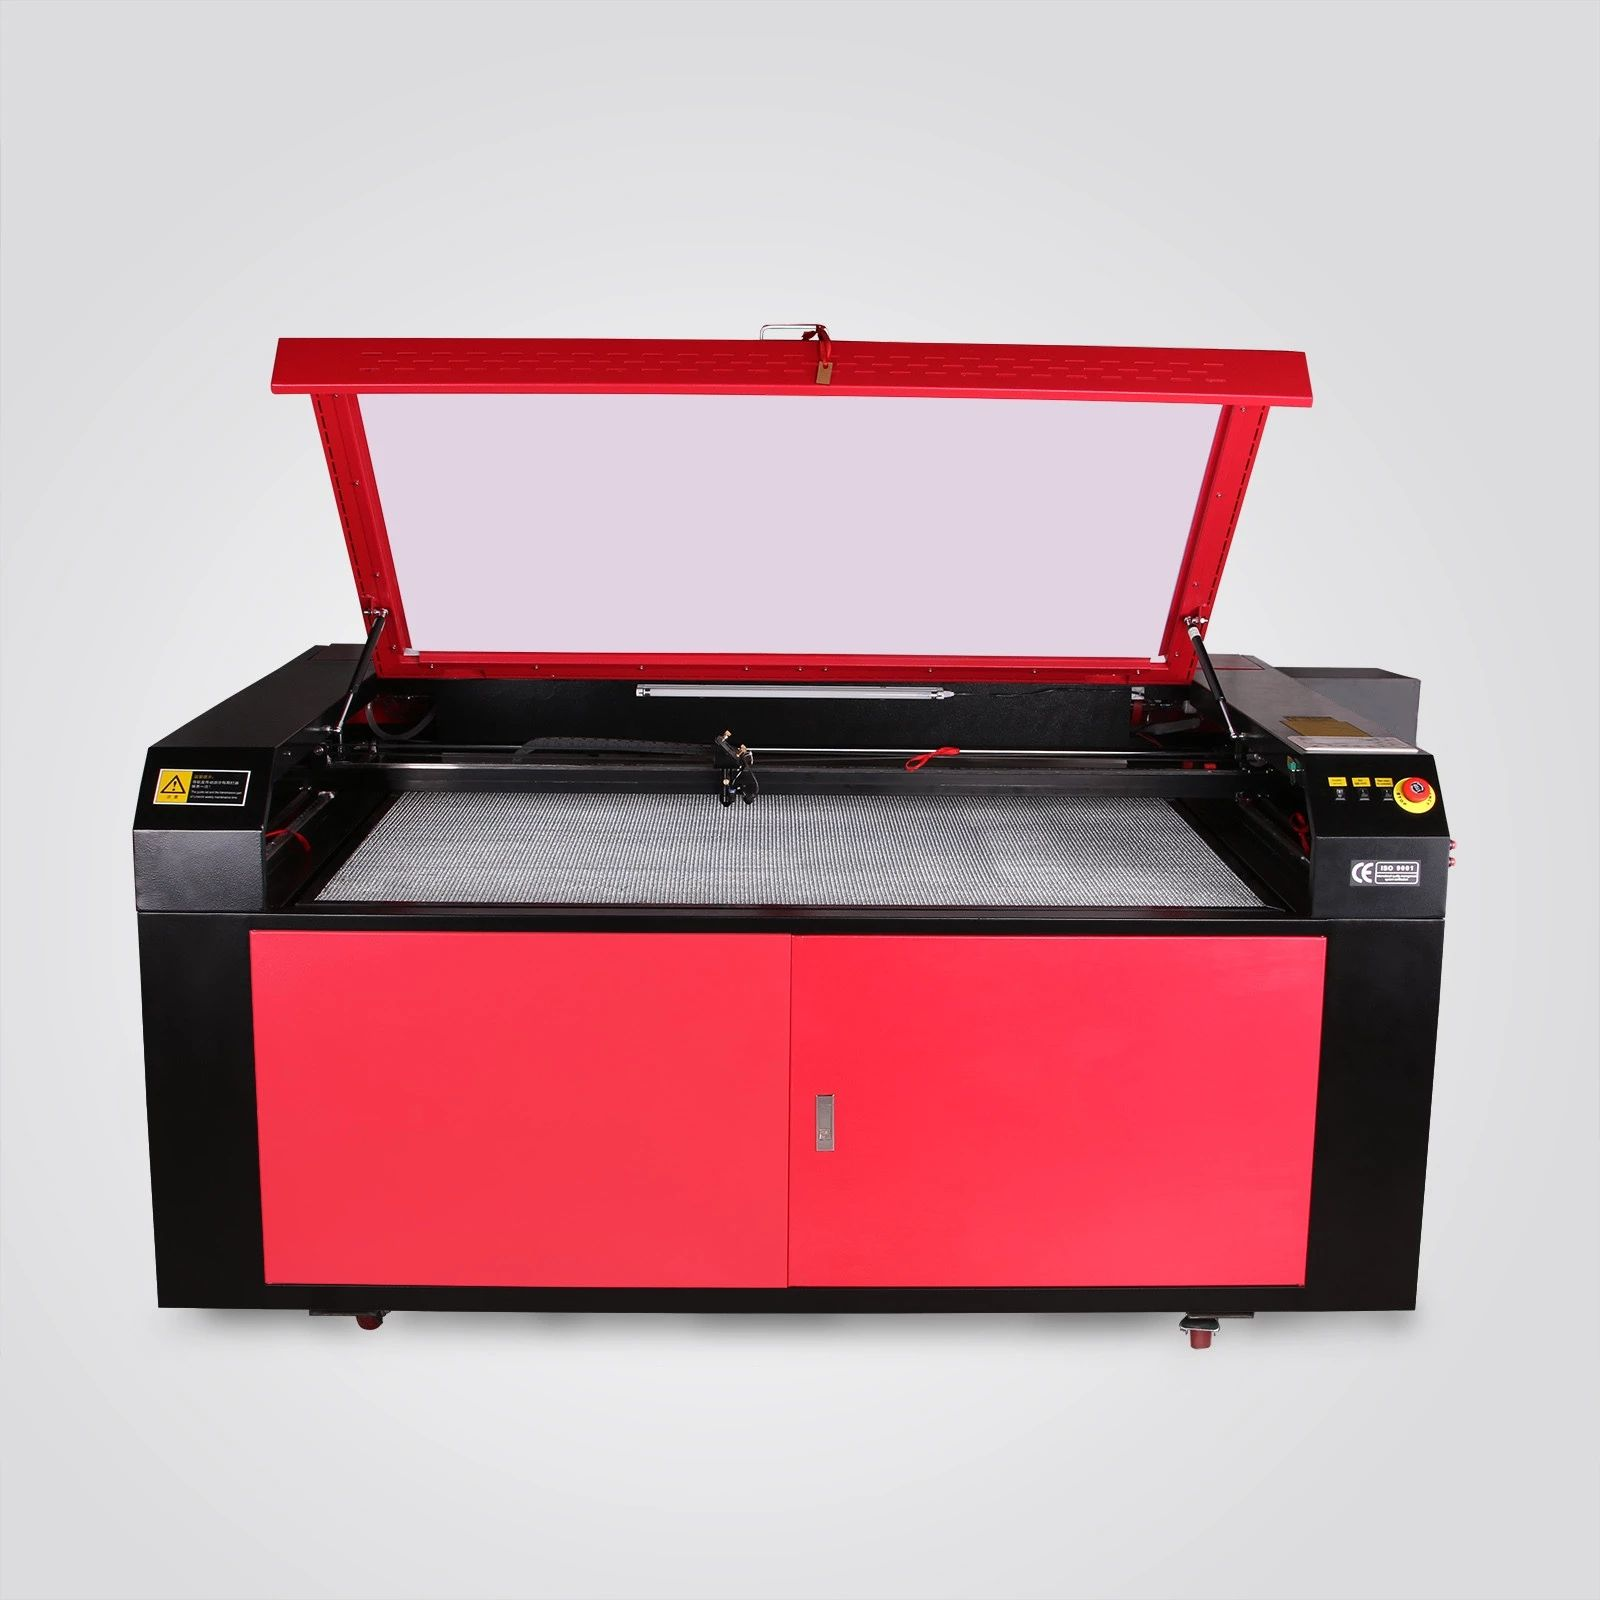 cnc for plastic cutting with Hiwin rail guide YH Co2 Laser Cutting Engraving Machine 1390